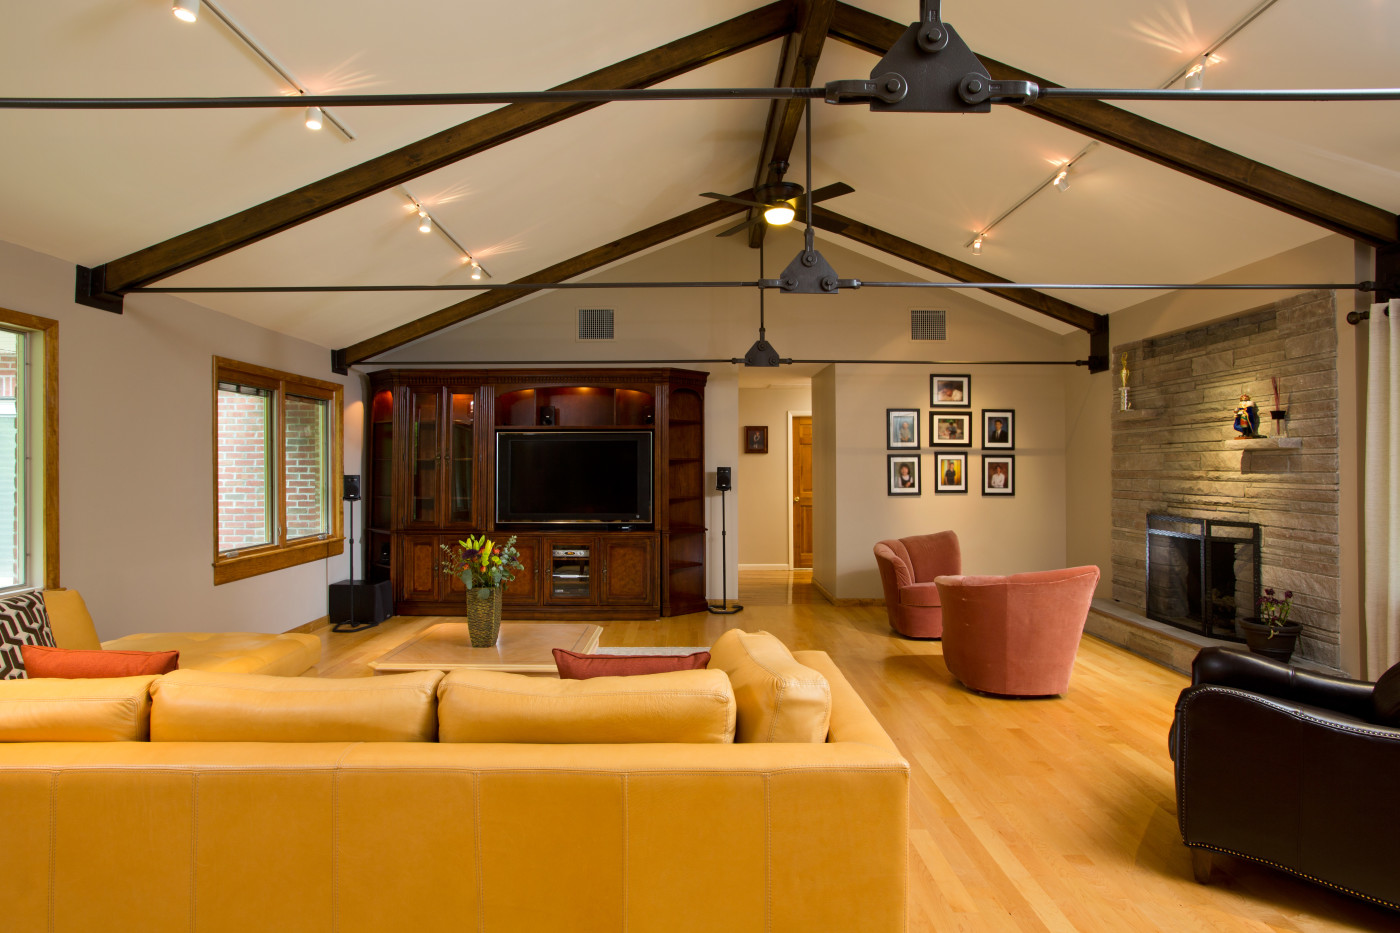 Iron and Wood vaulted ceiling supports   Teakwood Builders